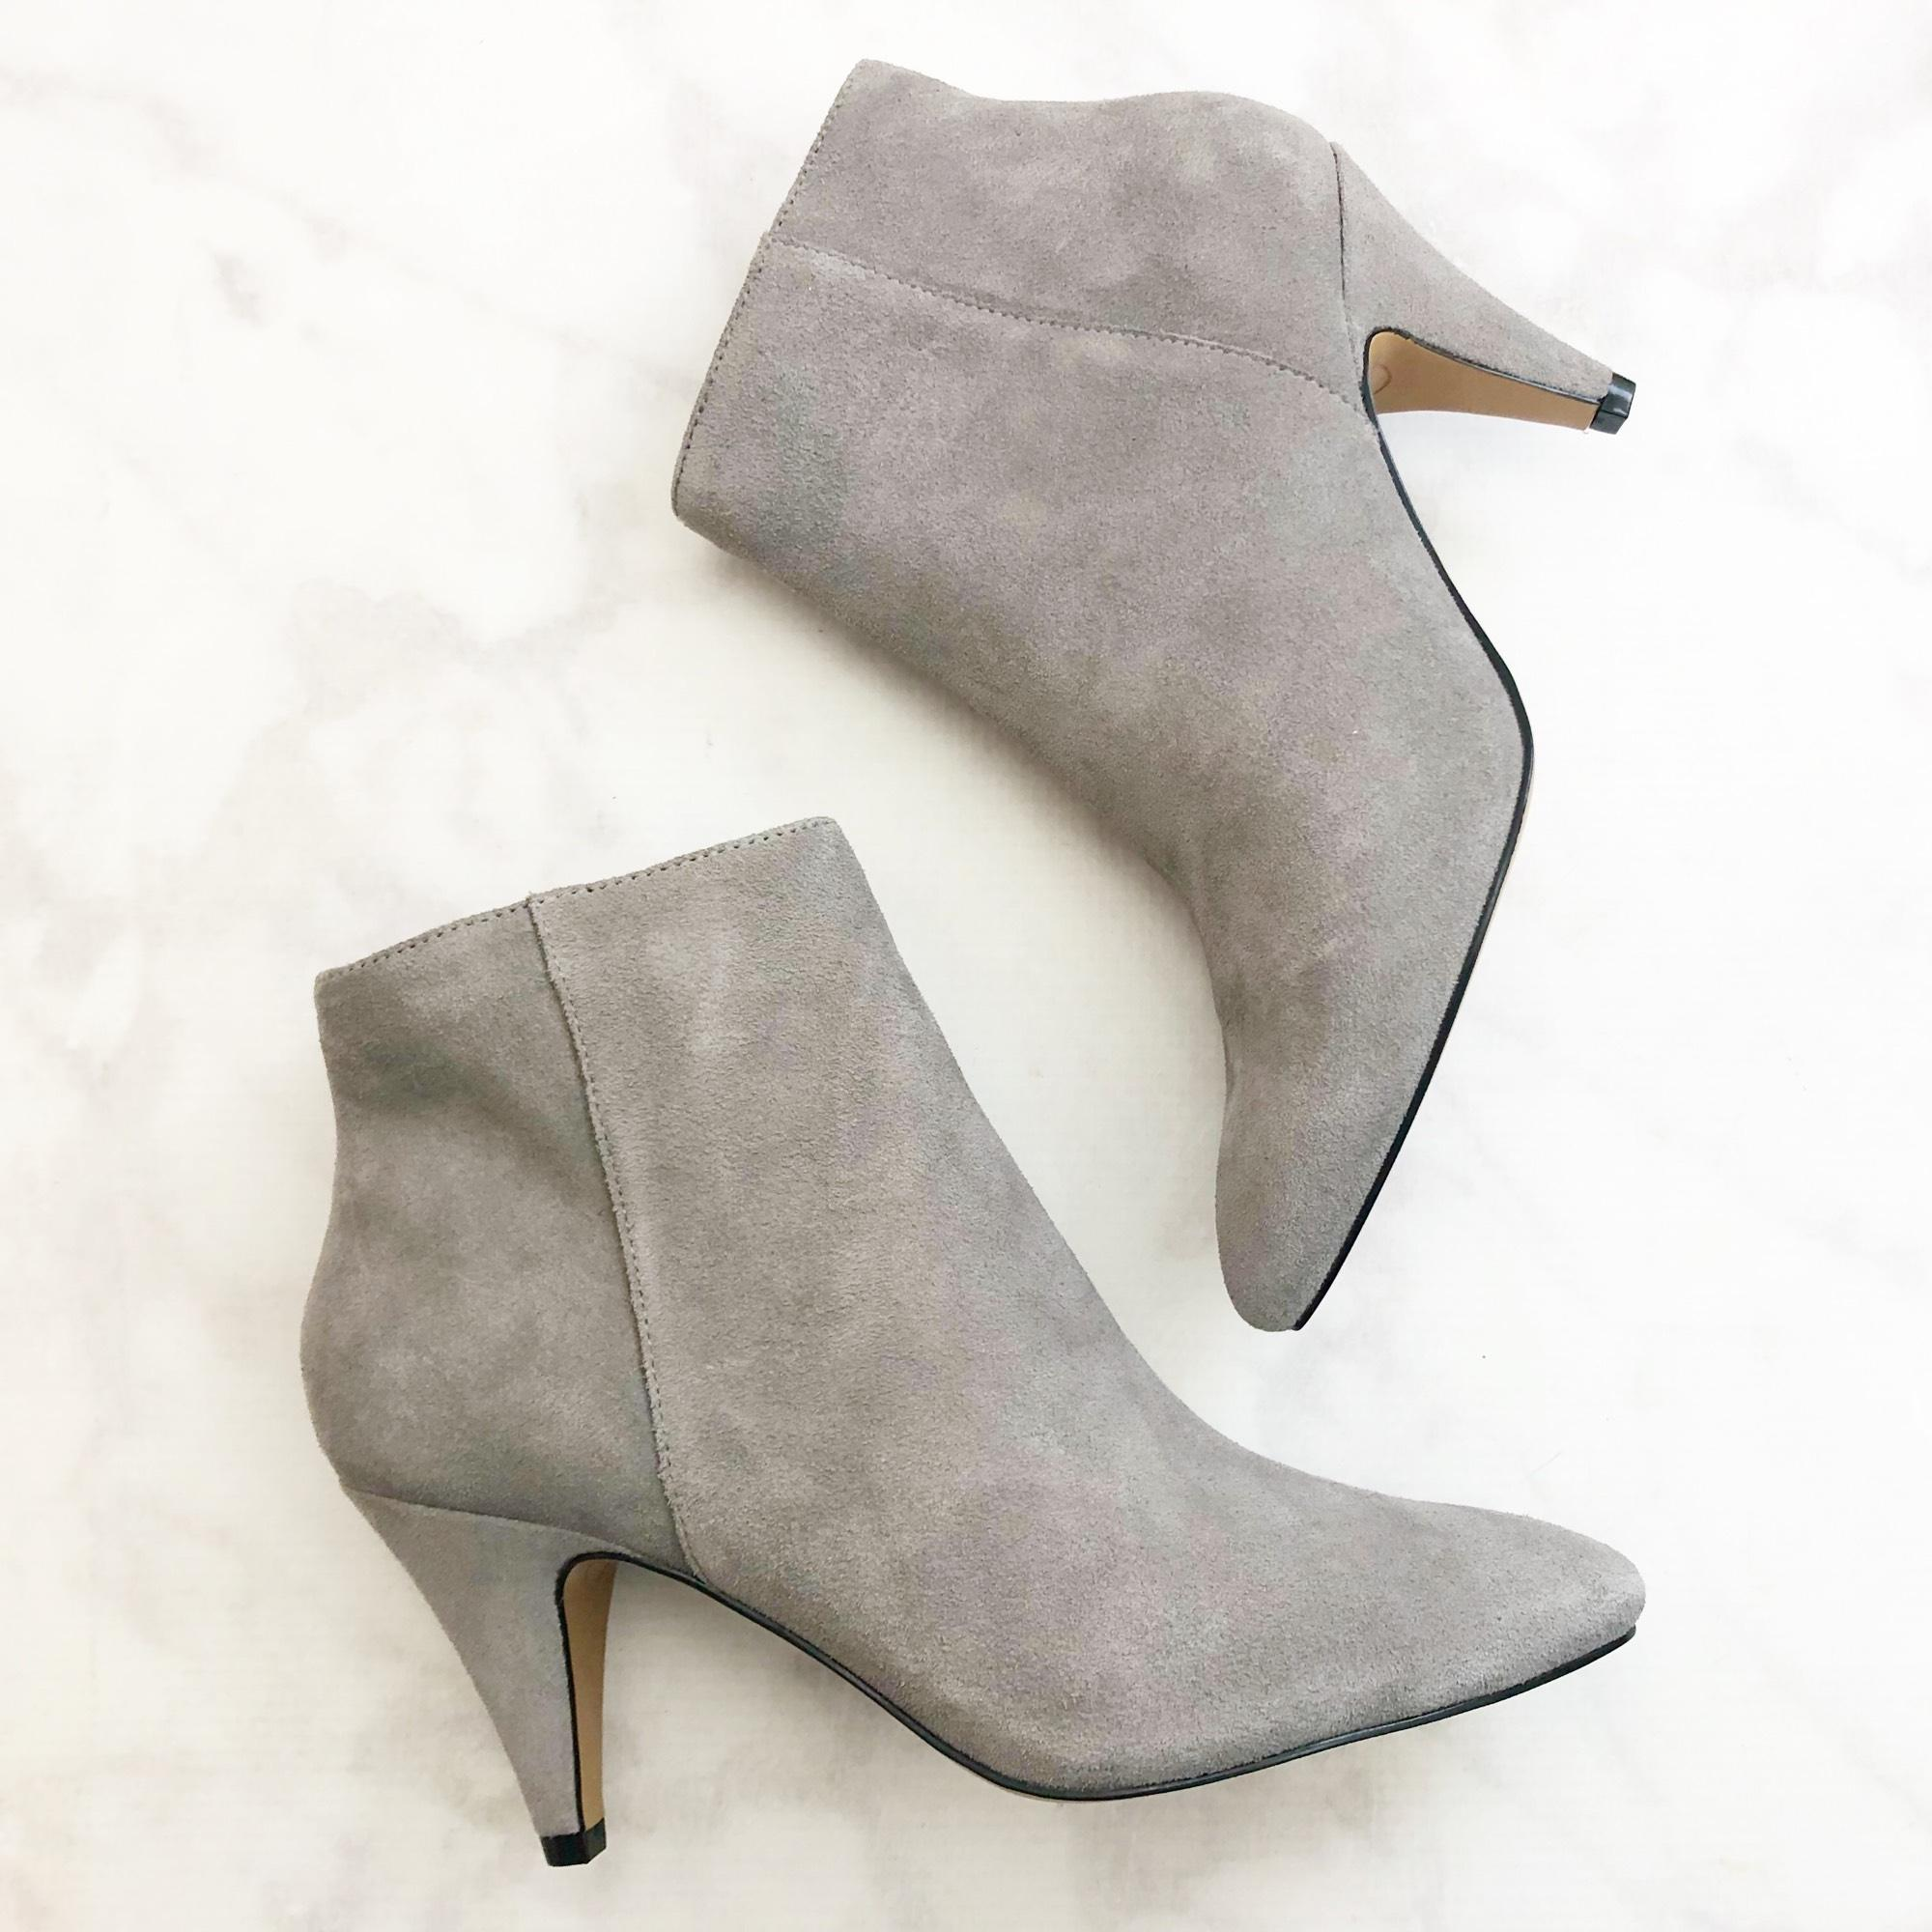 da525d1423da2 ... Dolce Vita Gray Suede Pointed Toe Ankle Boots Booties Size Size Size US  7 Regular ...